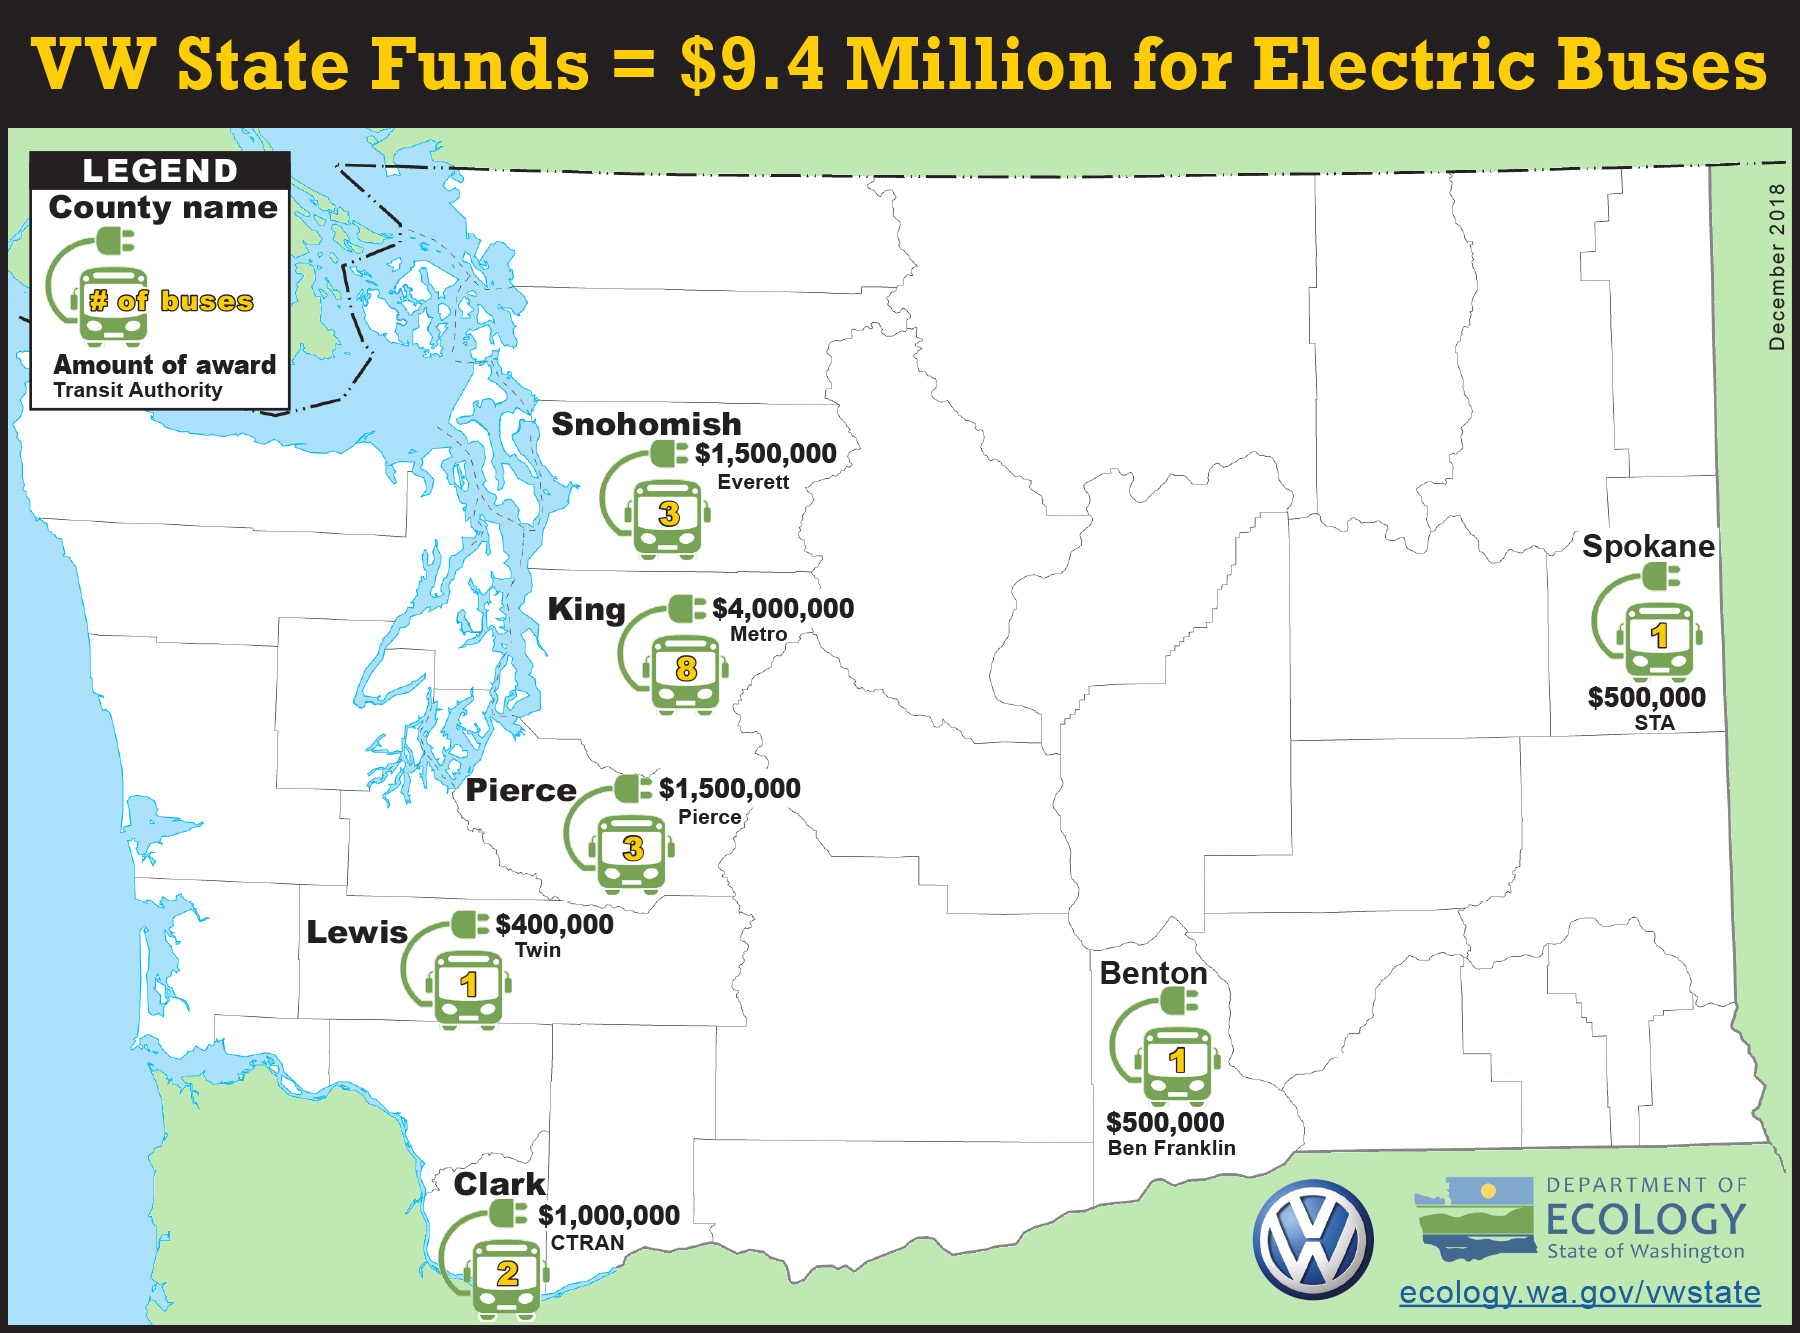 A map showing where electric transit bus grants were awarded.